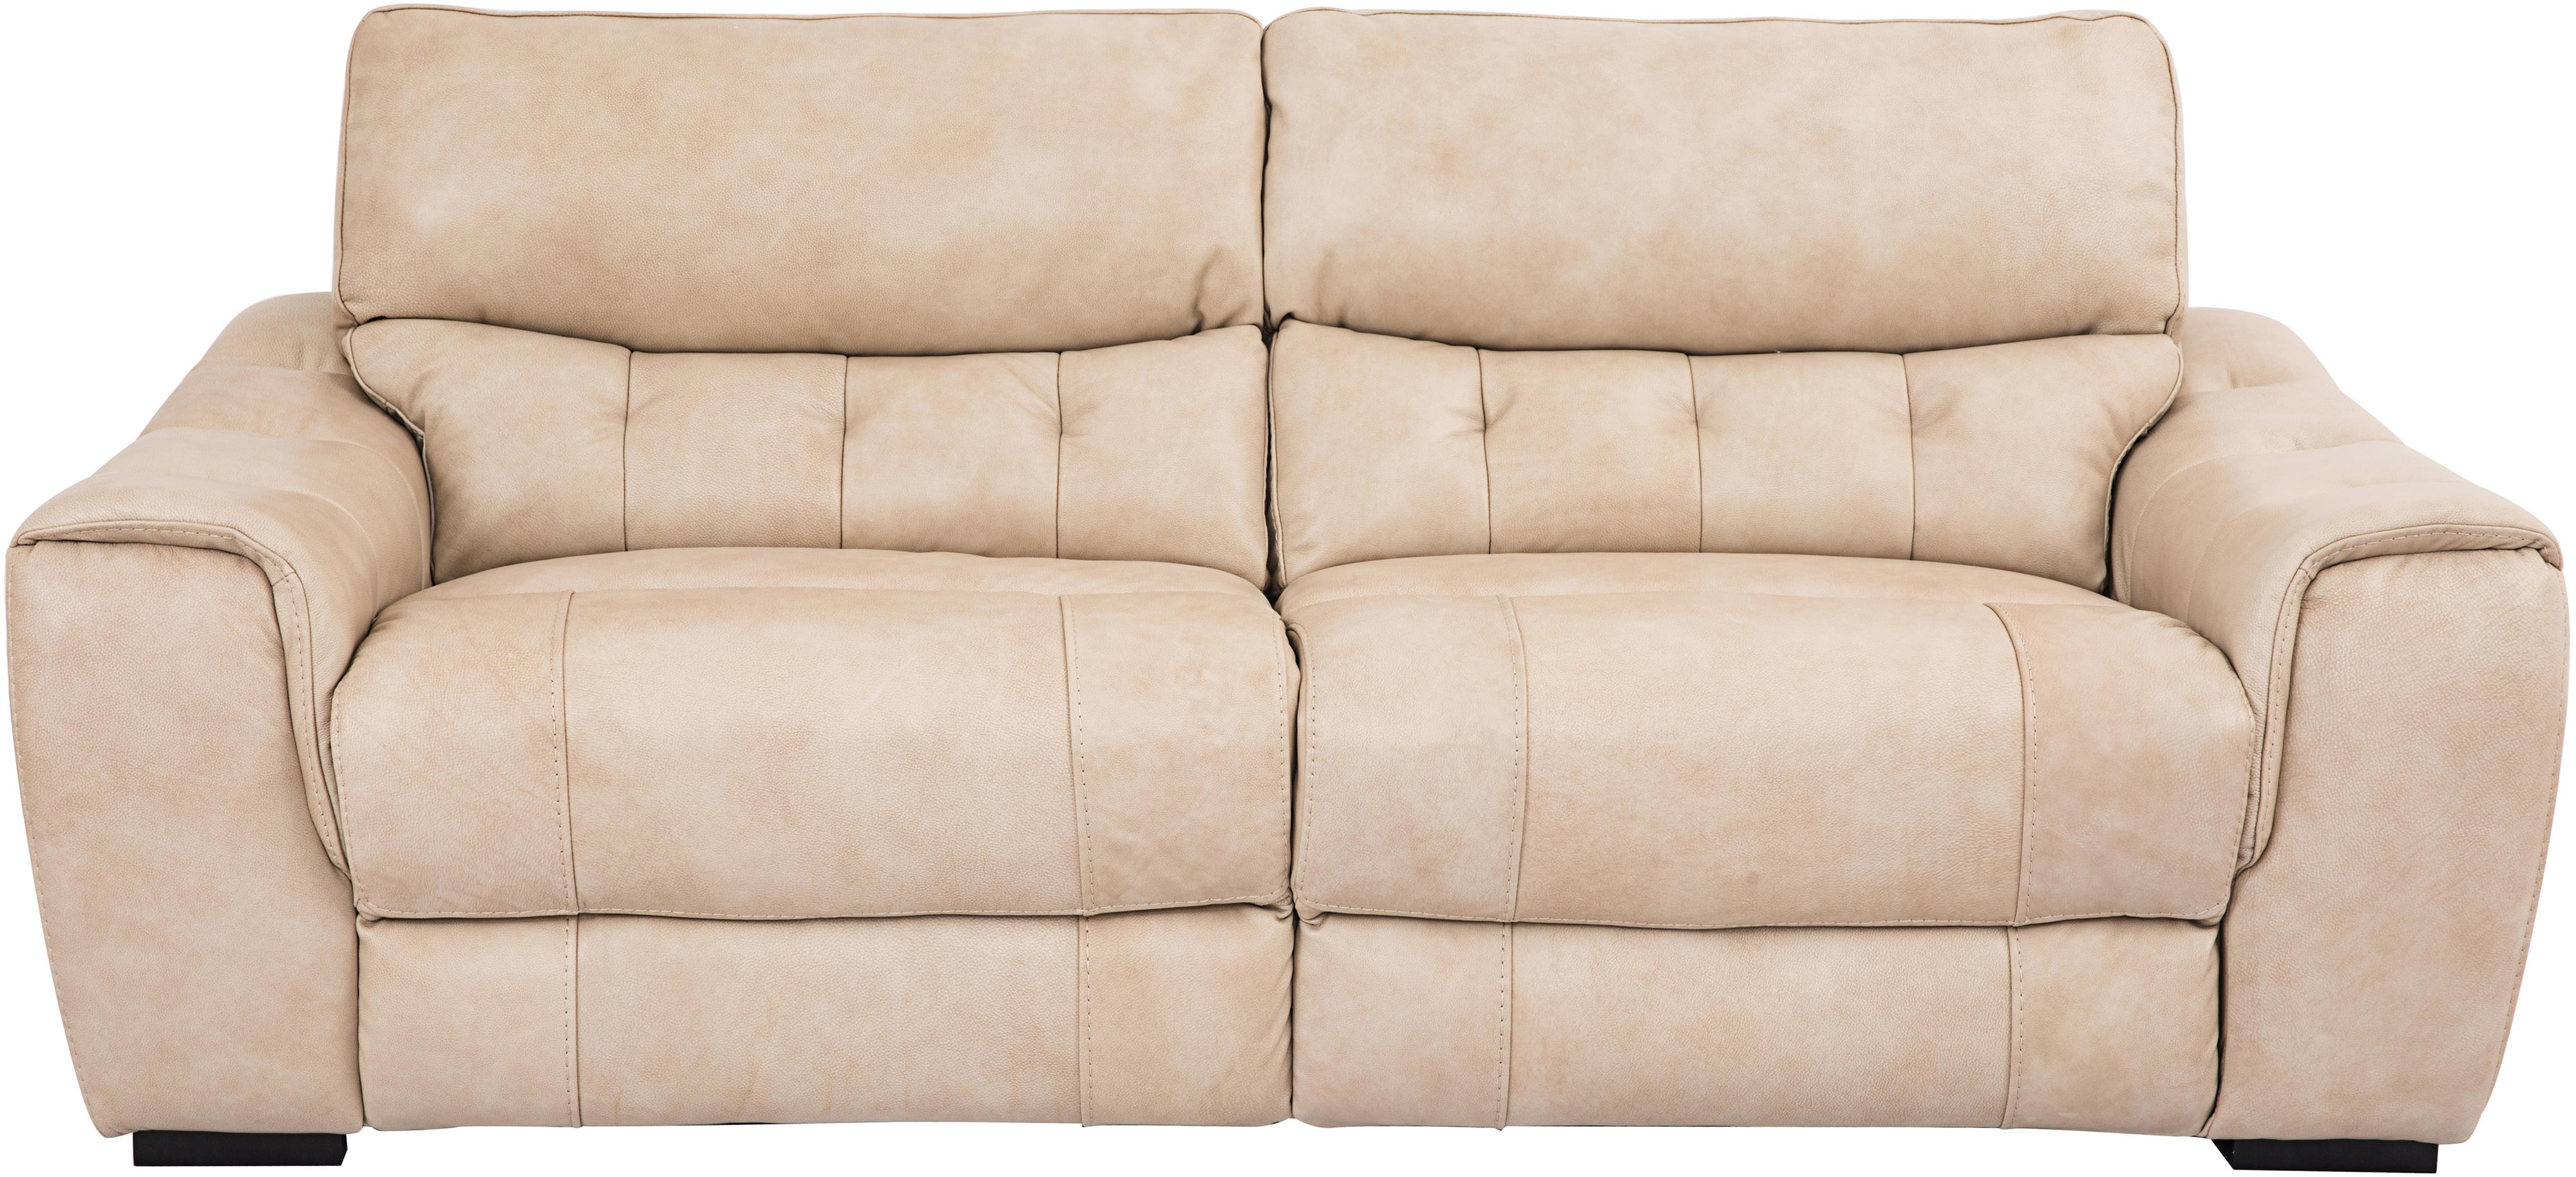 1005 Casual Power Reclining Sofa by Cheers at Lagniappe Home Store